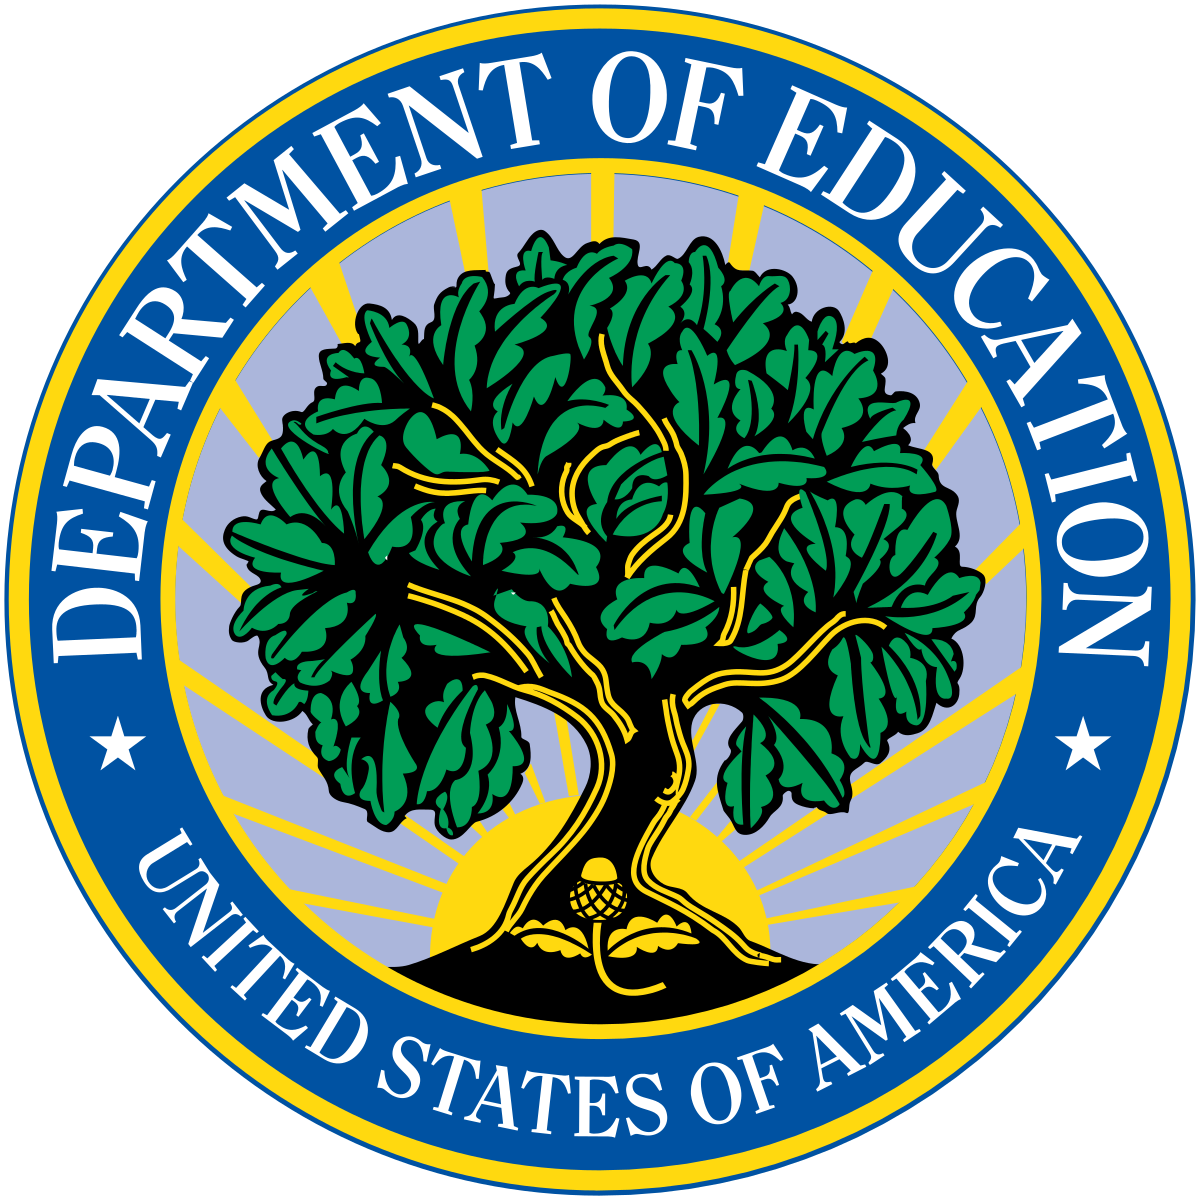 US Department of Education logo.